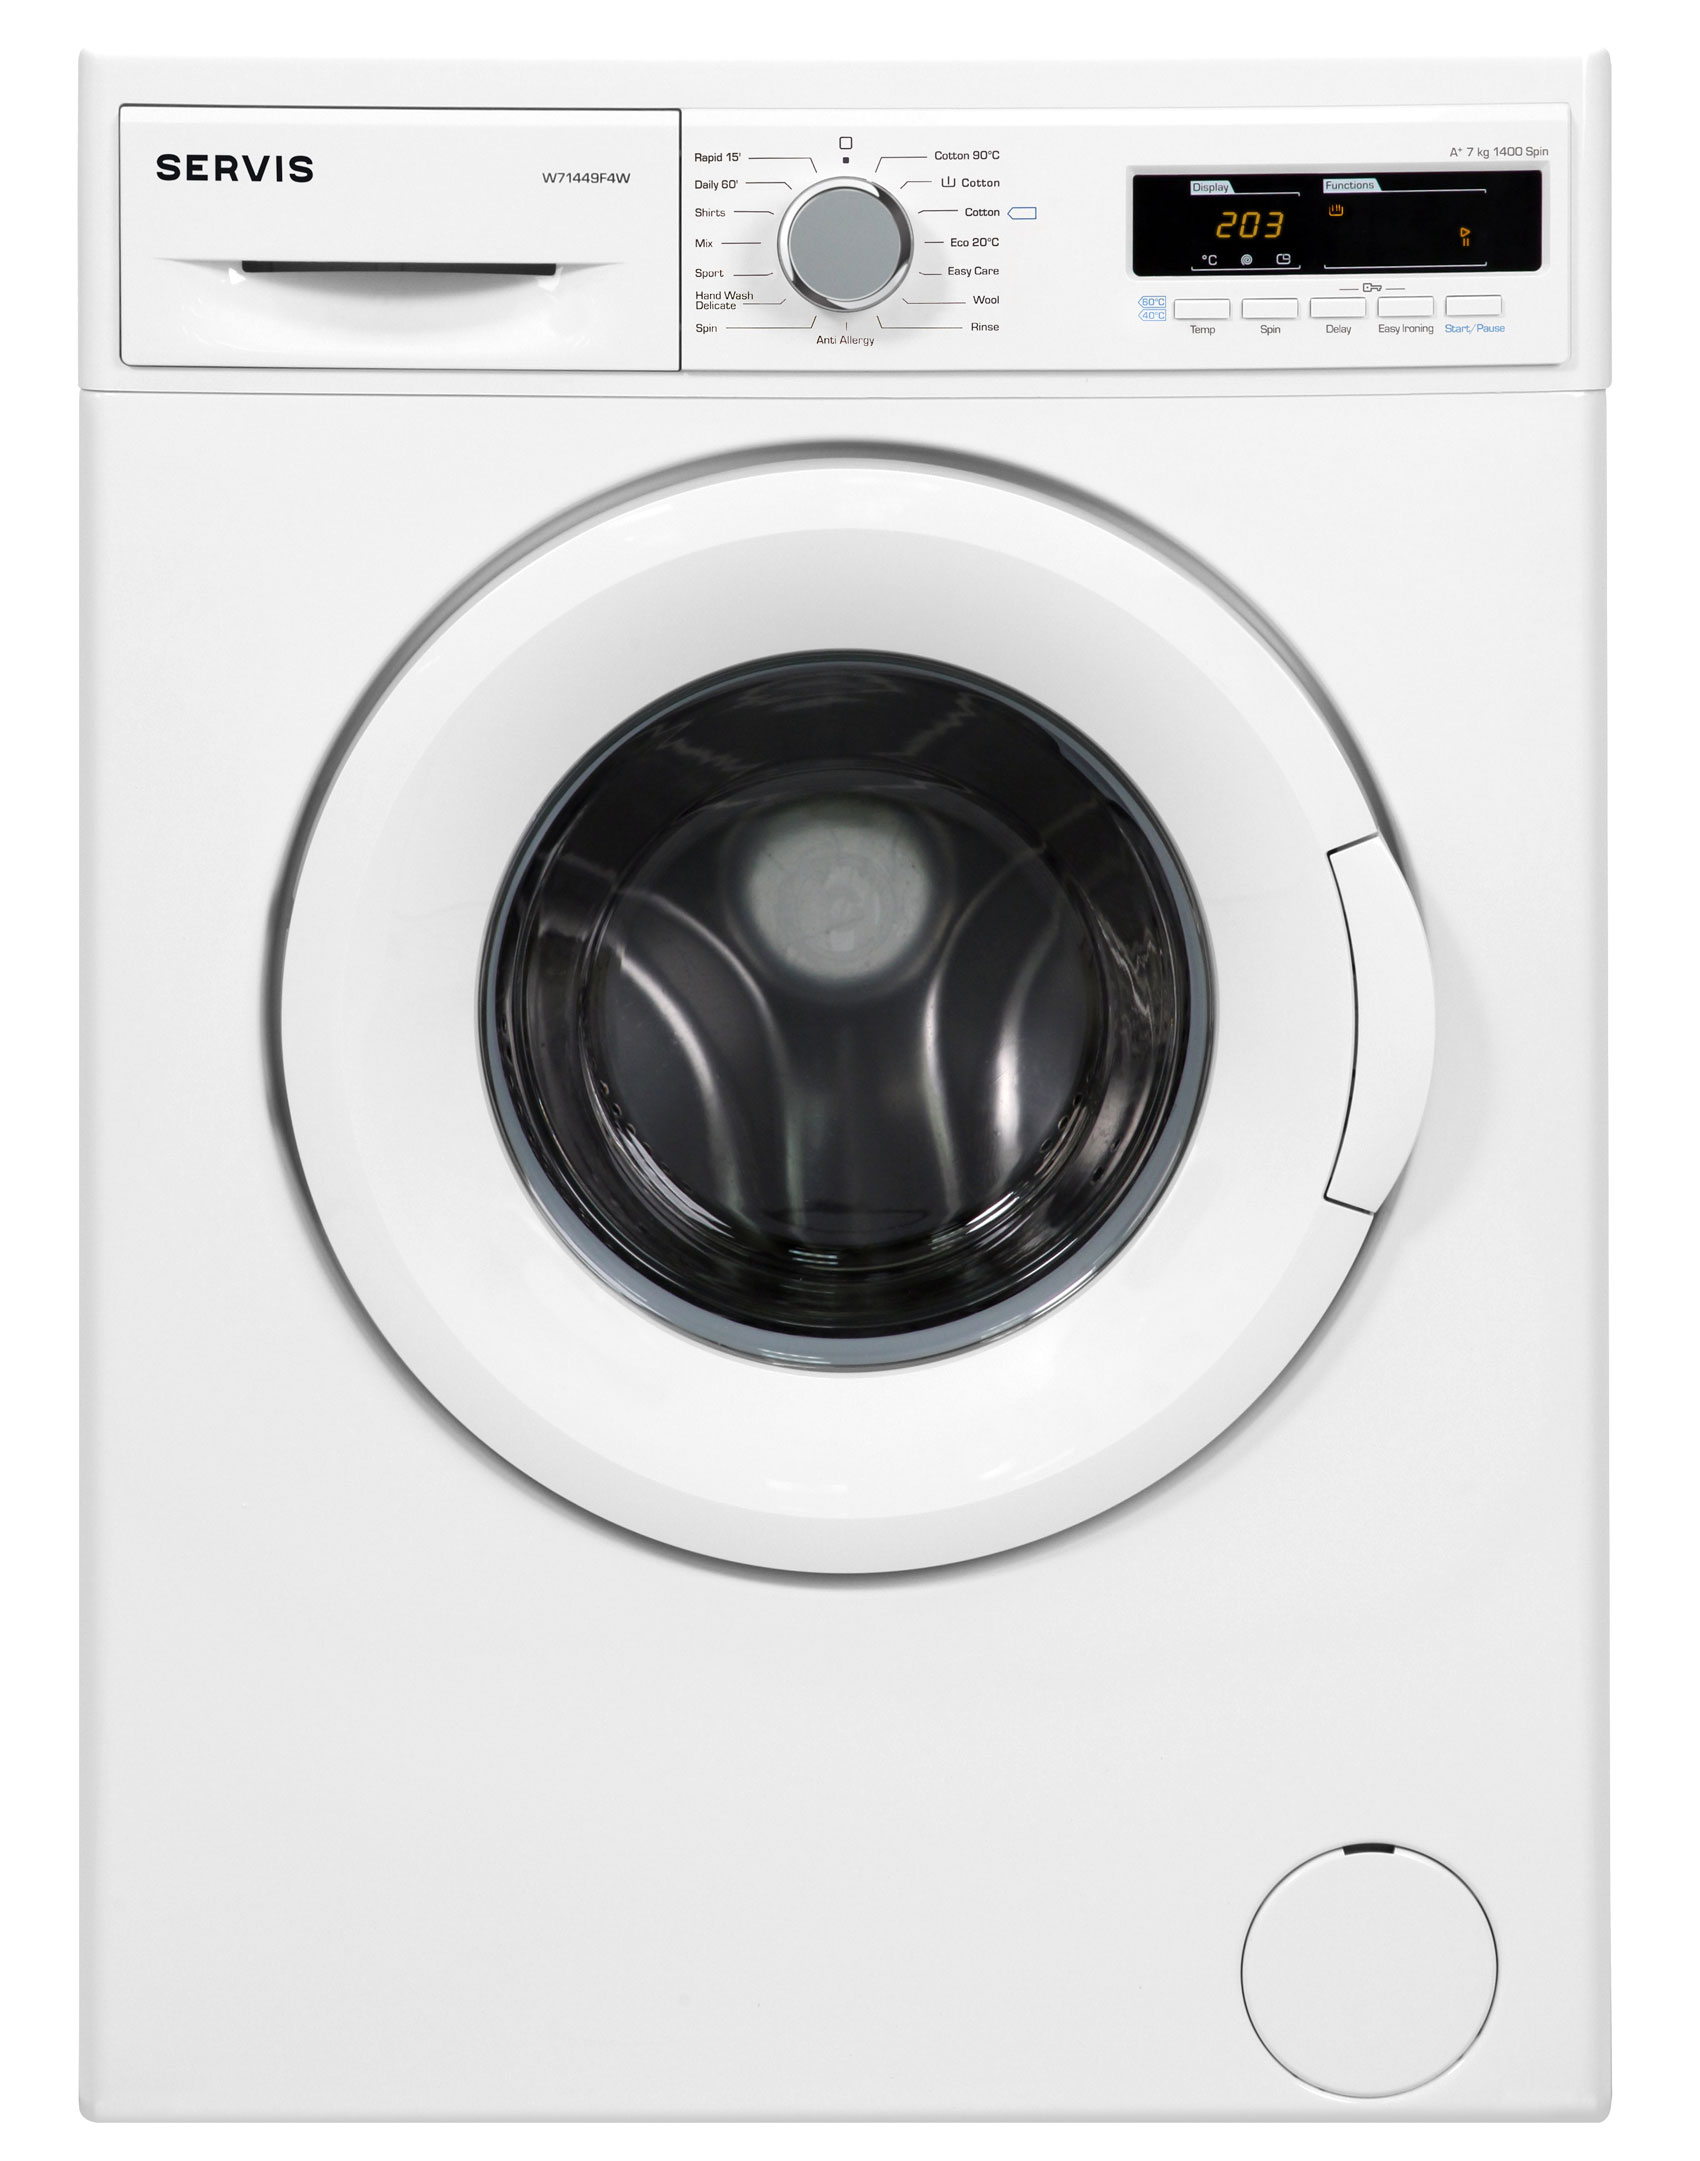 W71449F4W - 7kg - Washing Machine